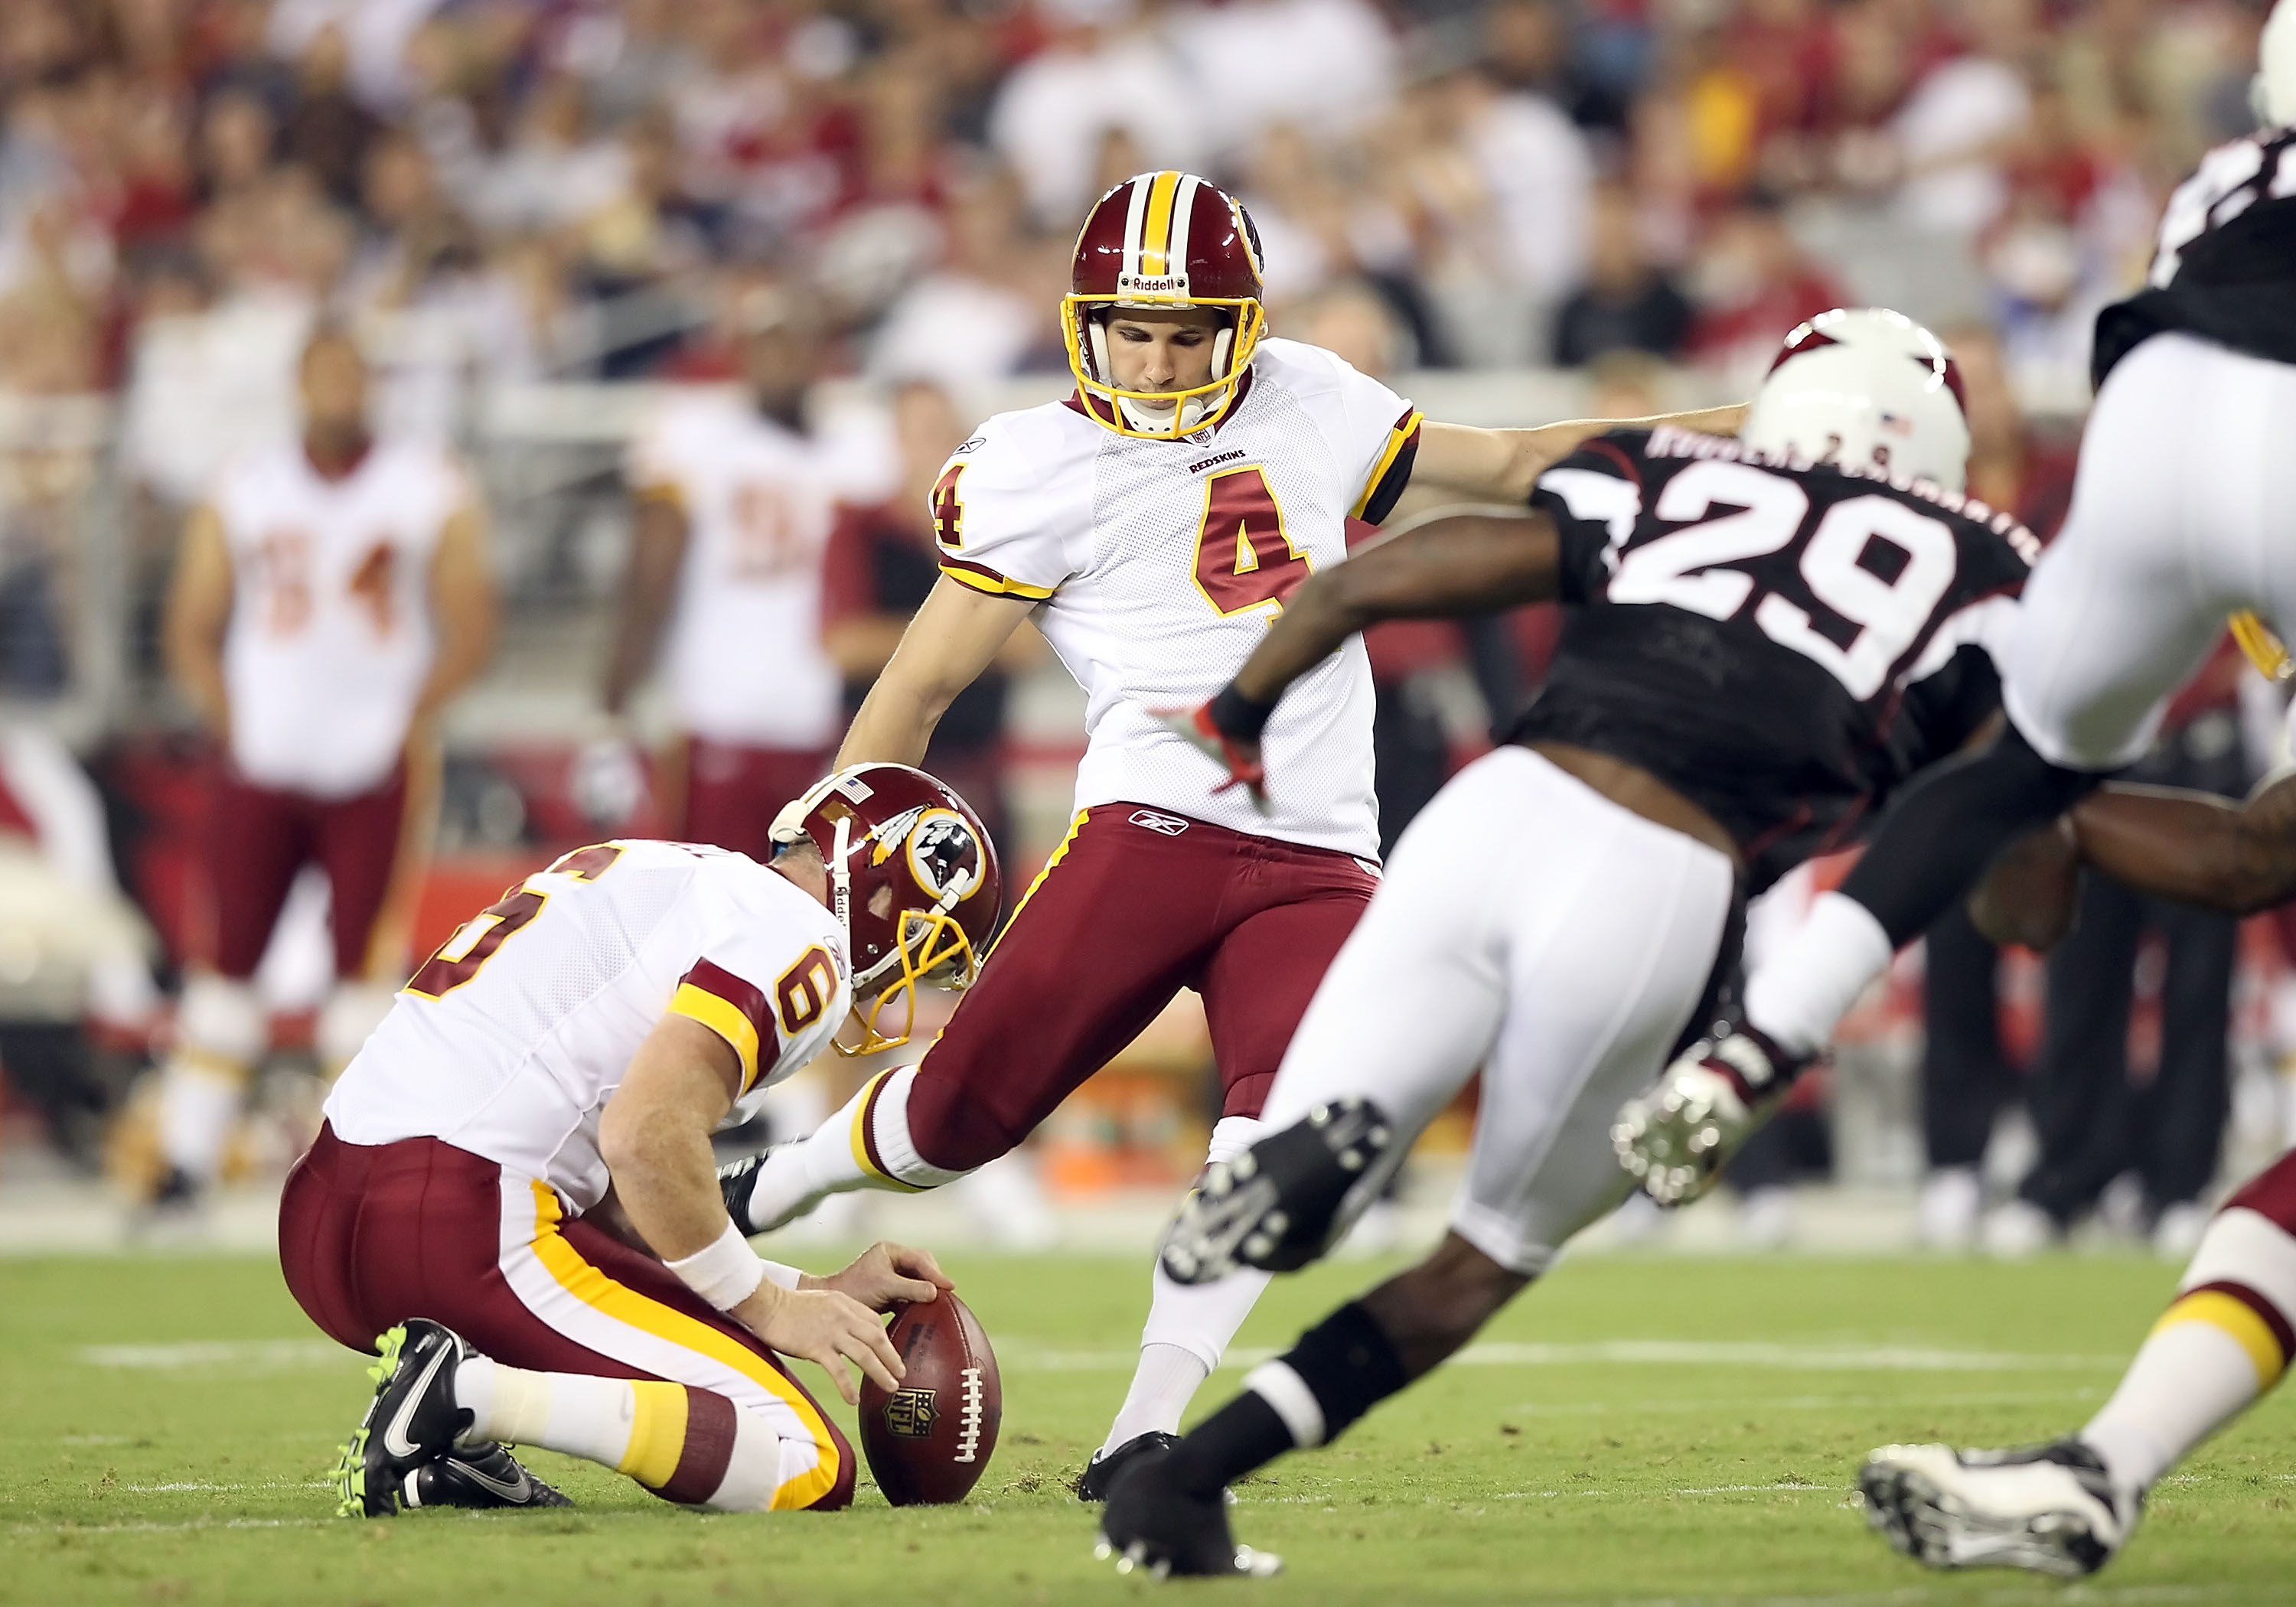 Before Redskins kicker Graham Gano booted field goals in the nation's capital, he kicked a game-winning field goal in the UFL Championship Game.